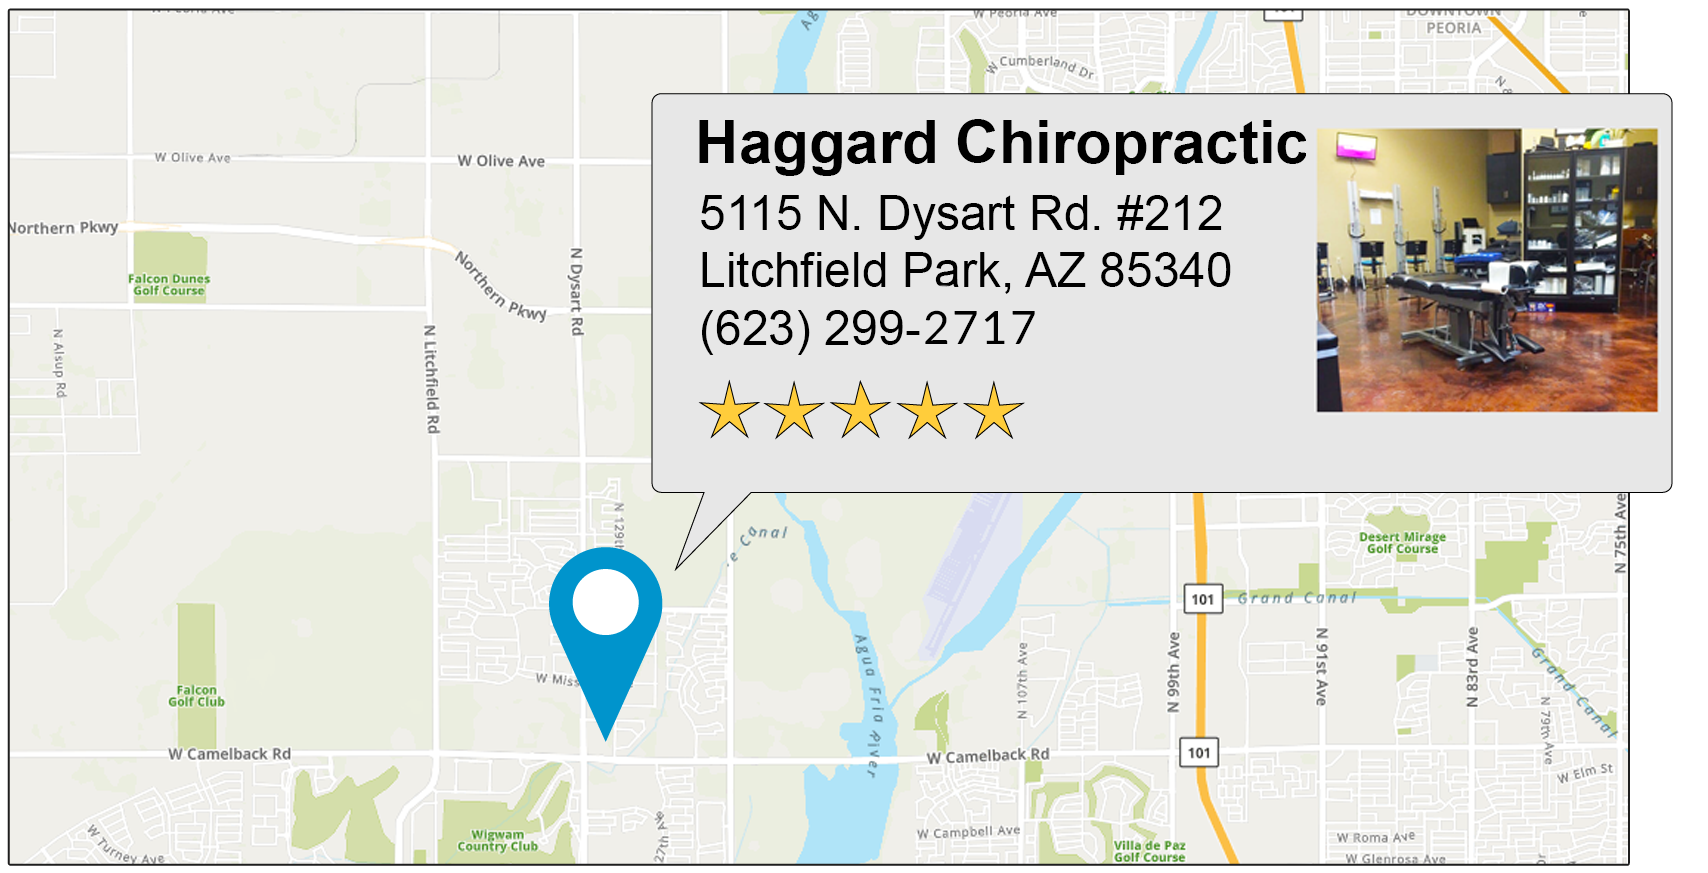 Haggard Chiropractic's Litchfield Park office location on google map